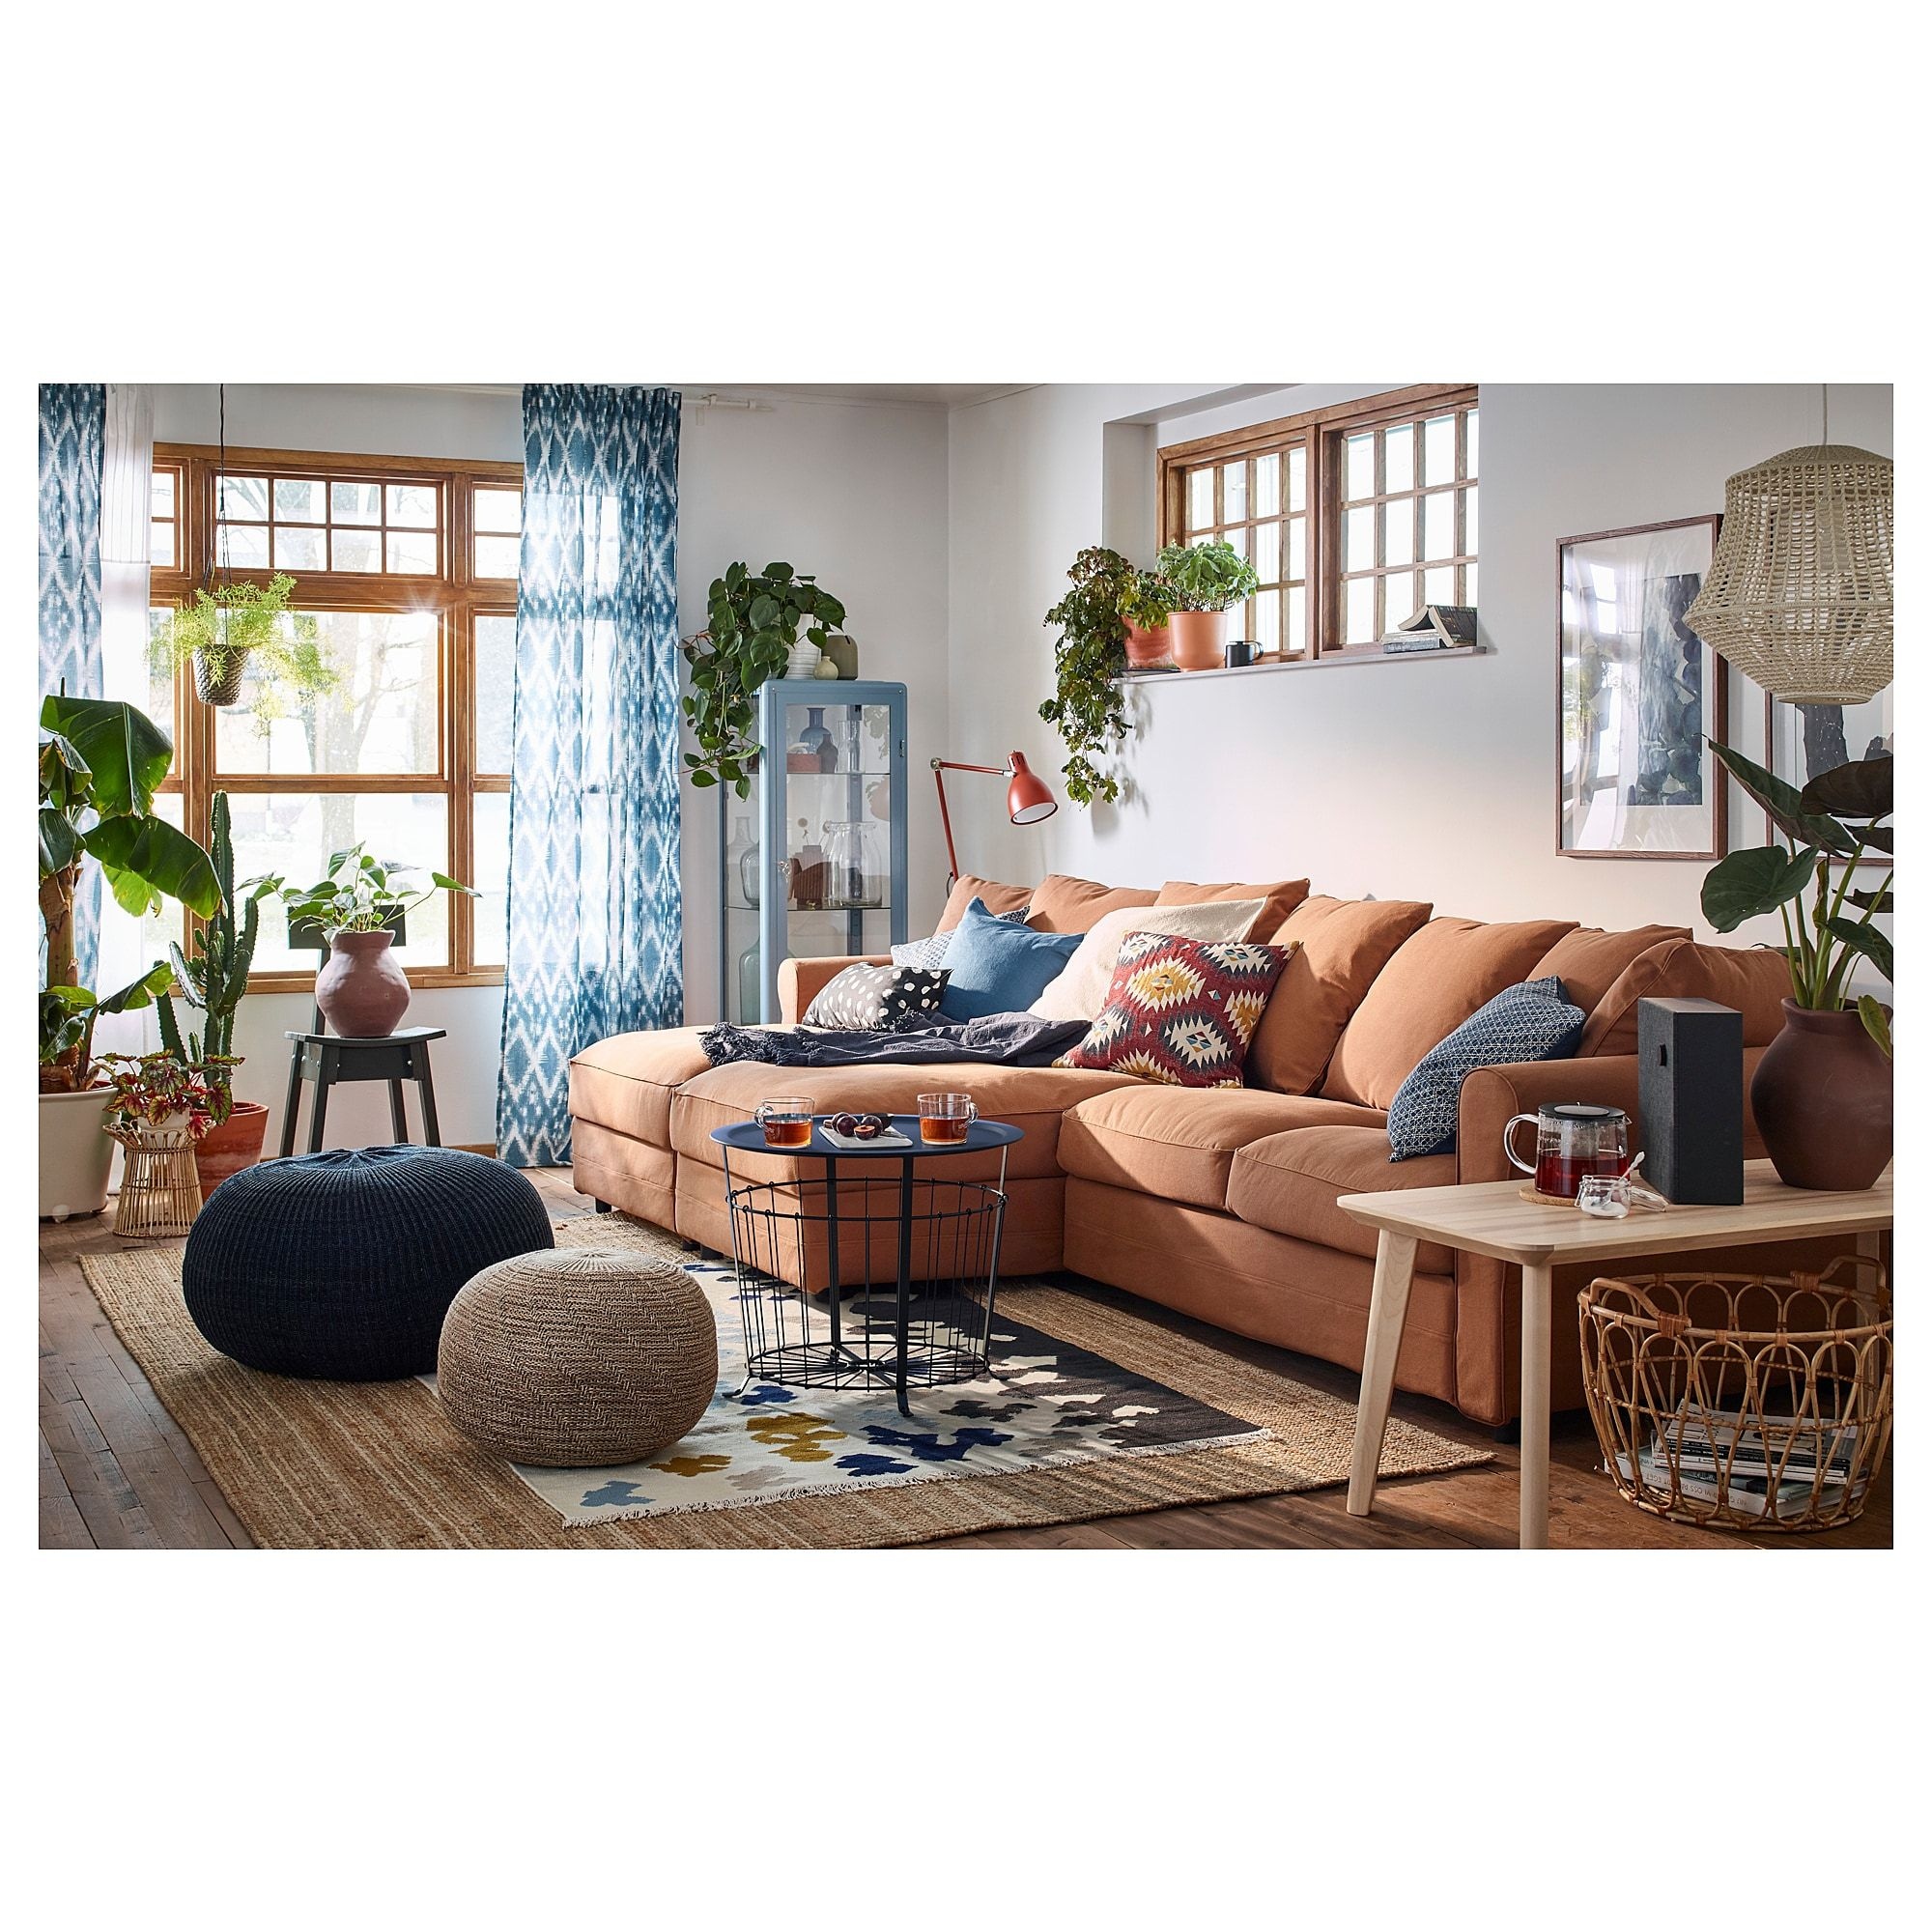 Grönlid Sectional, 4-Seat - With Chaise, Ljungen Medium Gray ... intérieur Grönlid Avis